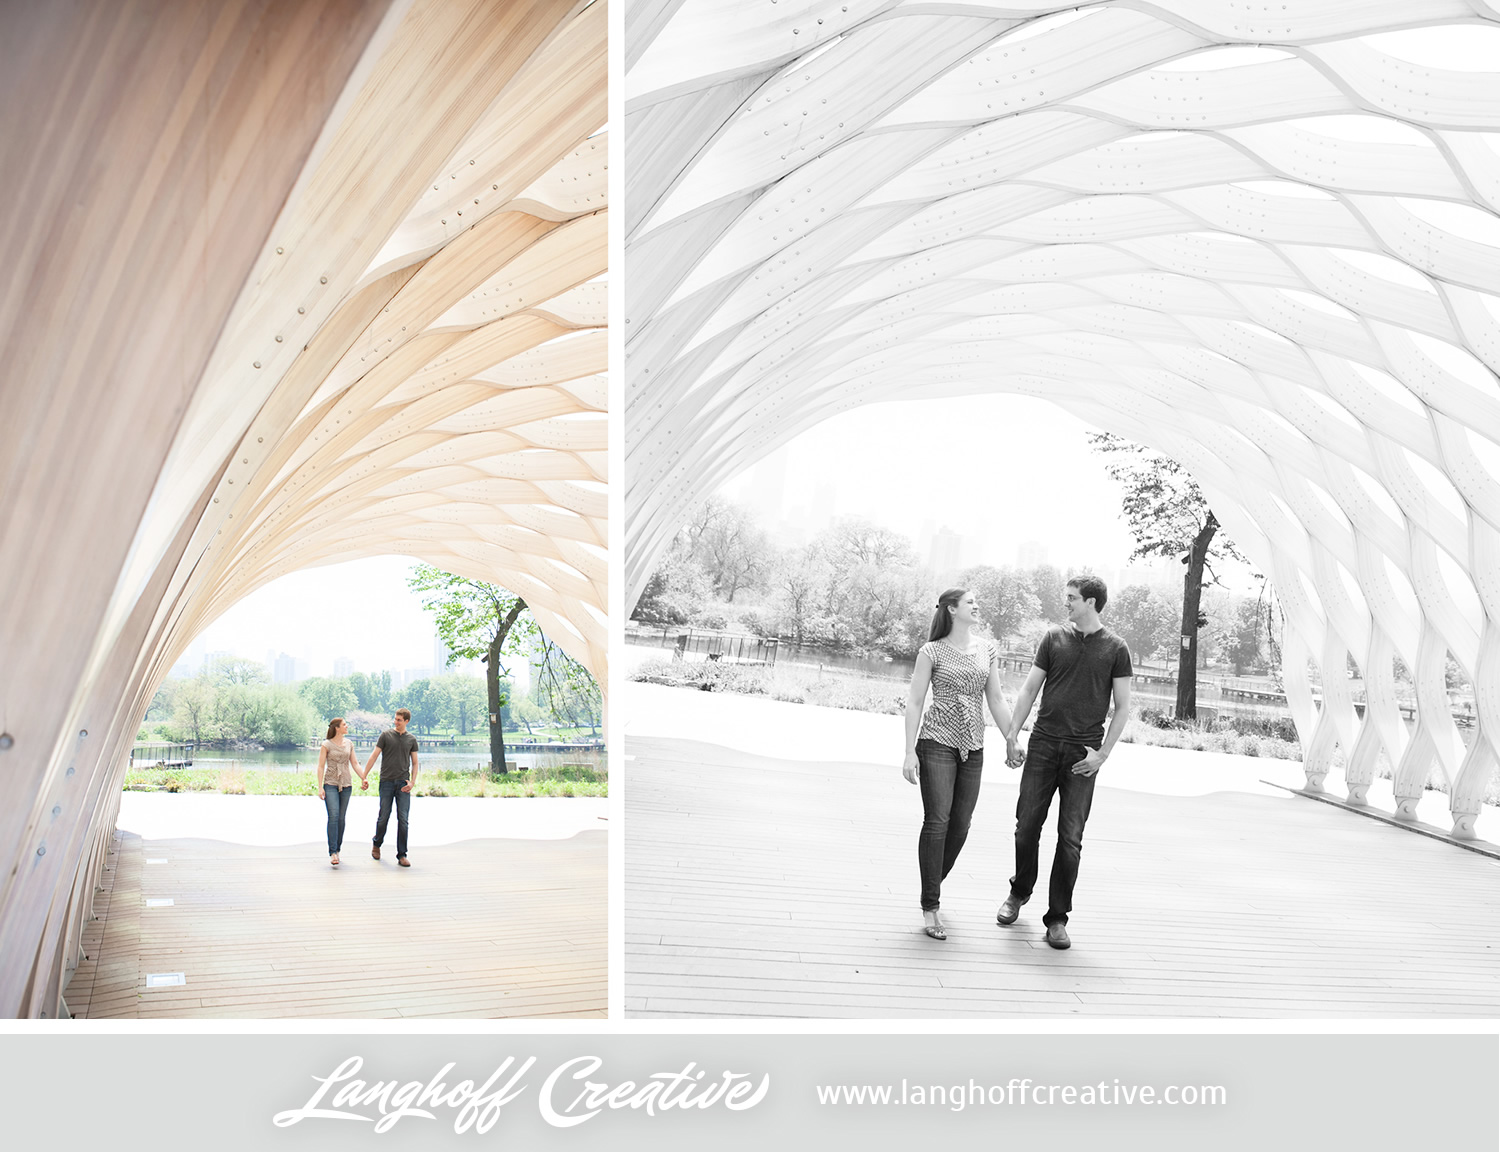 ChicagoEngagement-LincolnParkZoo-Engaged-LanghoffCreative-DestinationWeddingPhotographers-2014-ZacRachel-13-photo.jpg